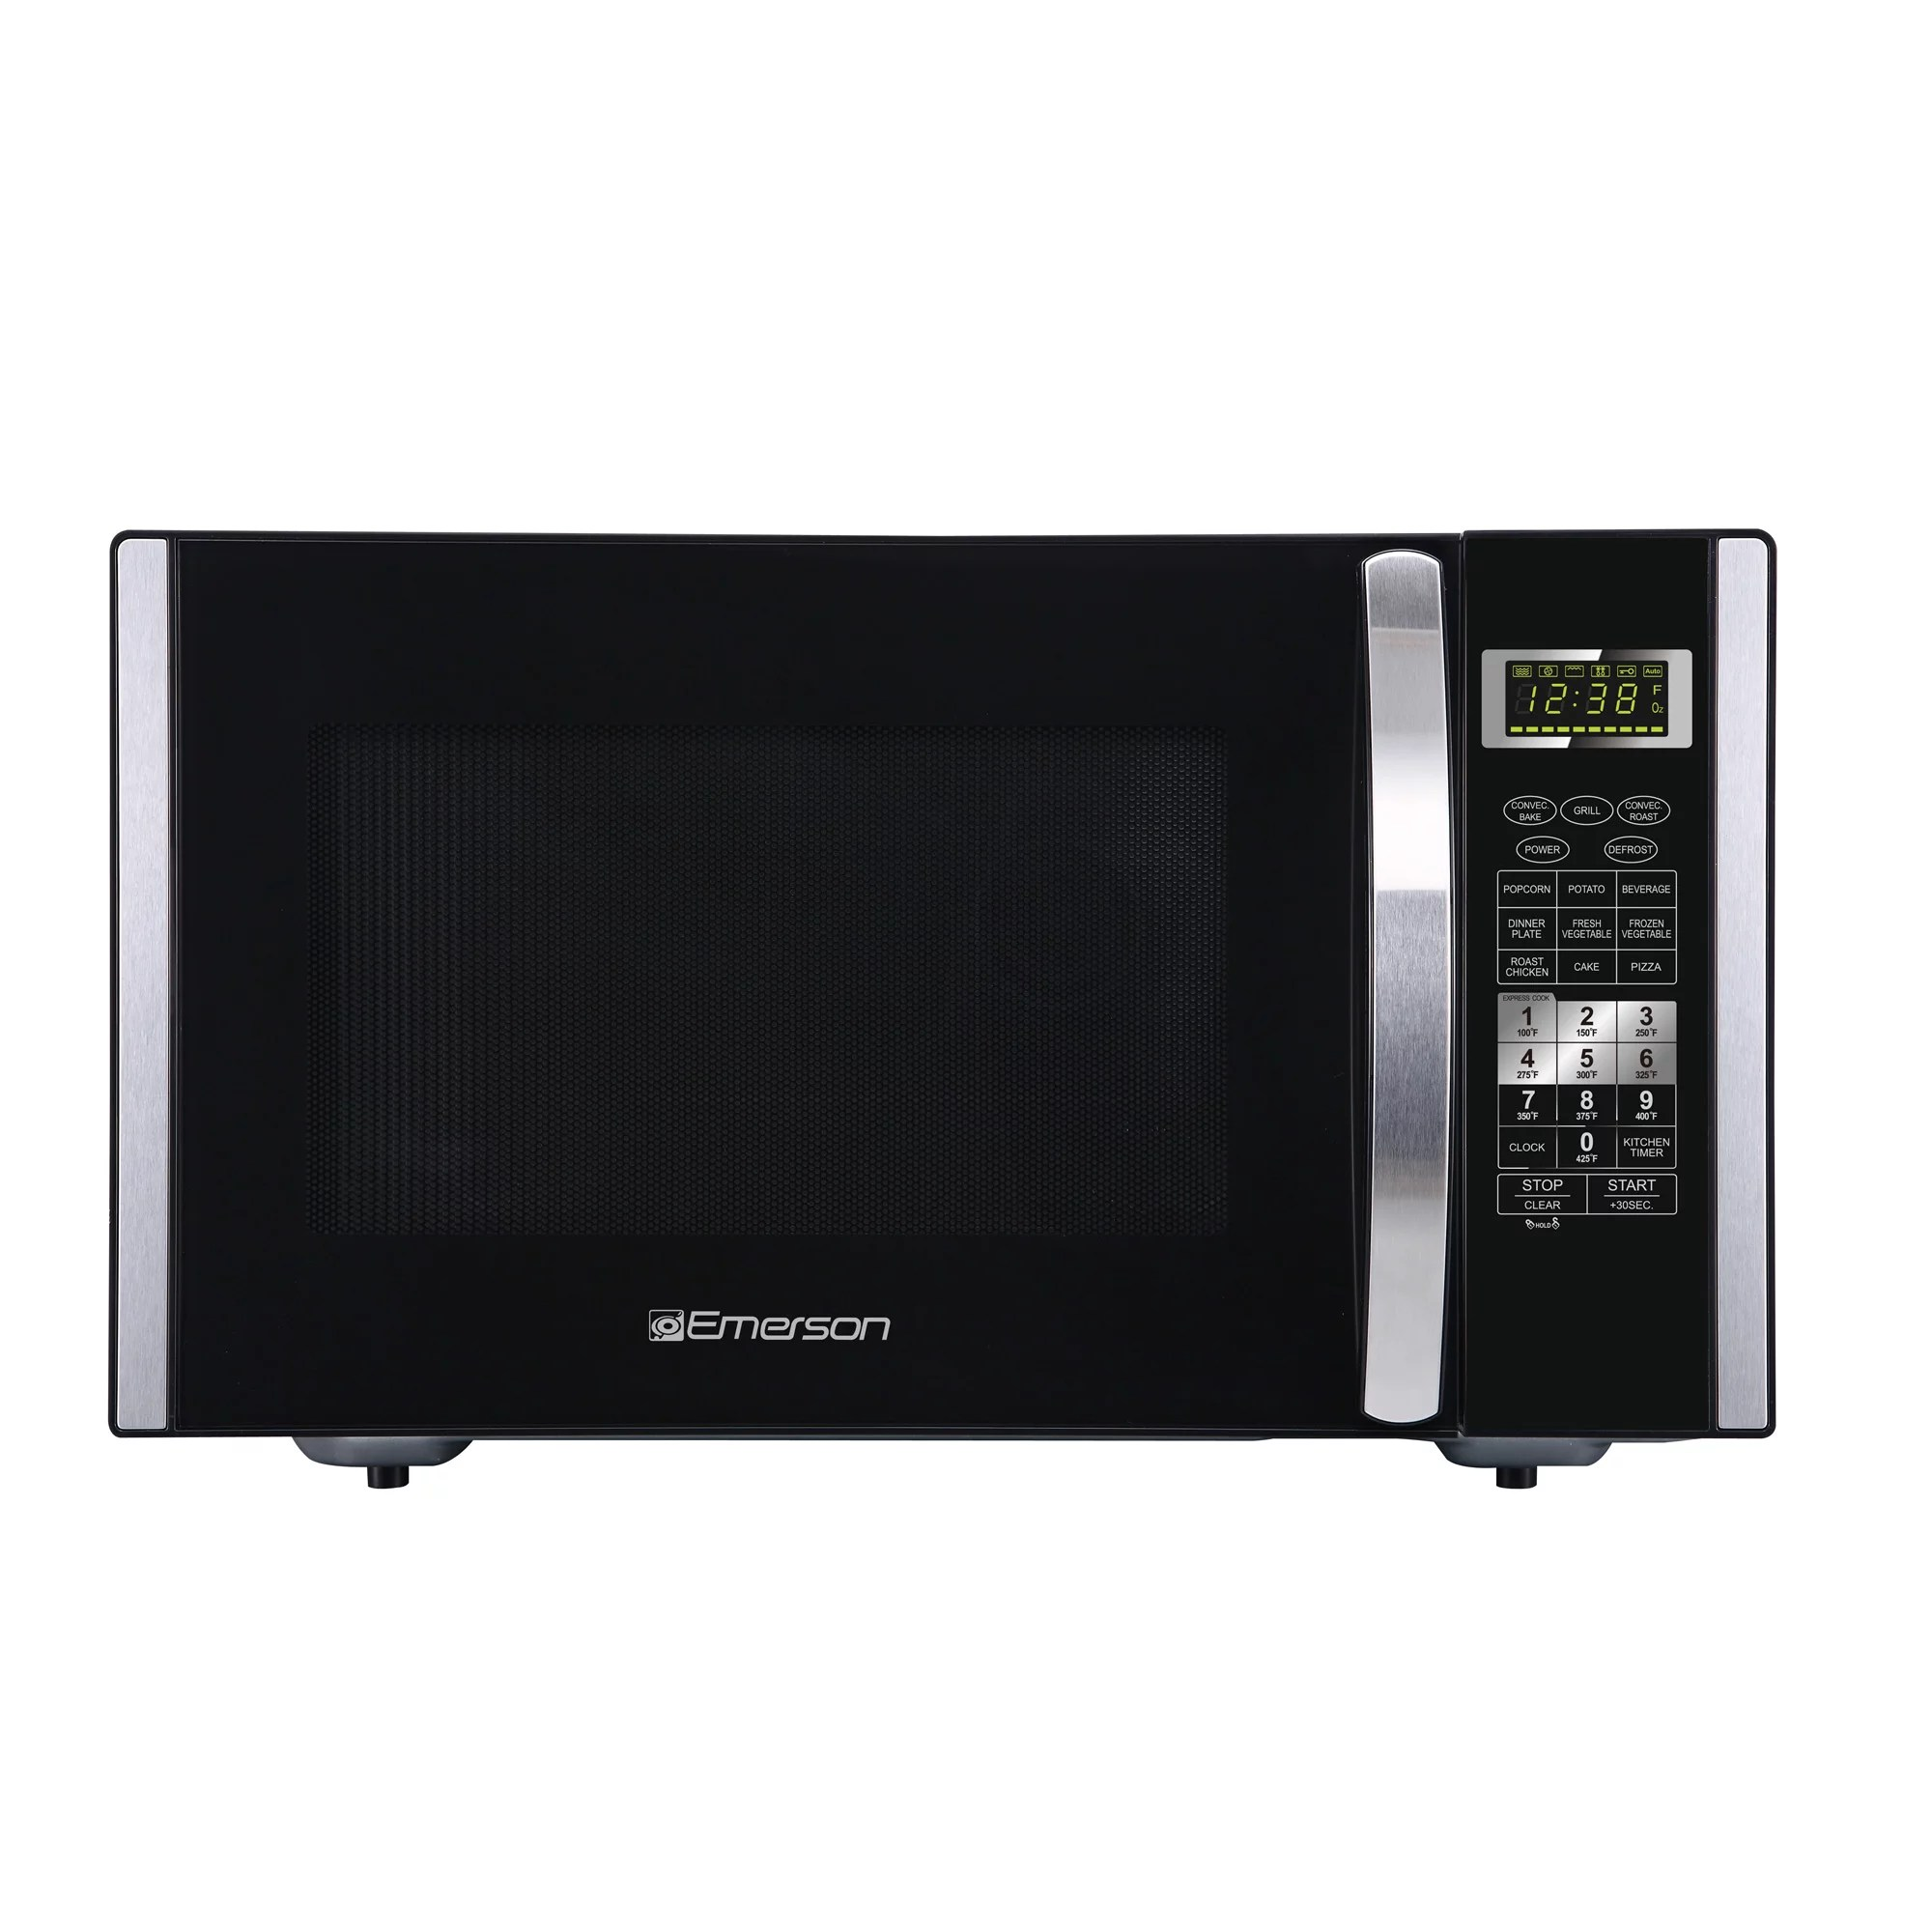 small resolution of emerson 1 5 cu ft 1000w convection microwave oven with grill touch sharp carousel wiring diagram emerson microwave fan wiring diagram